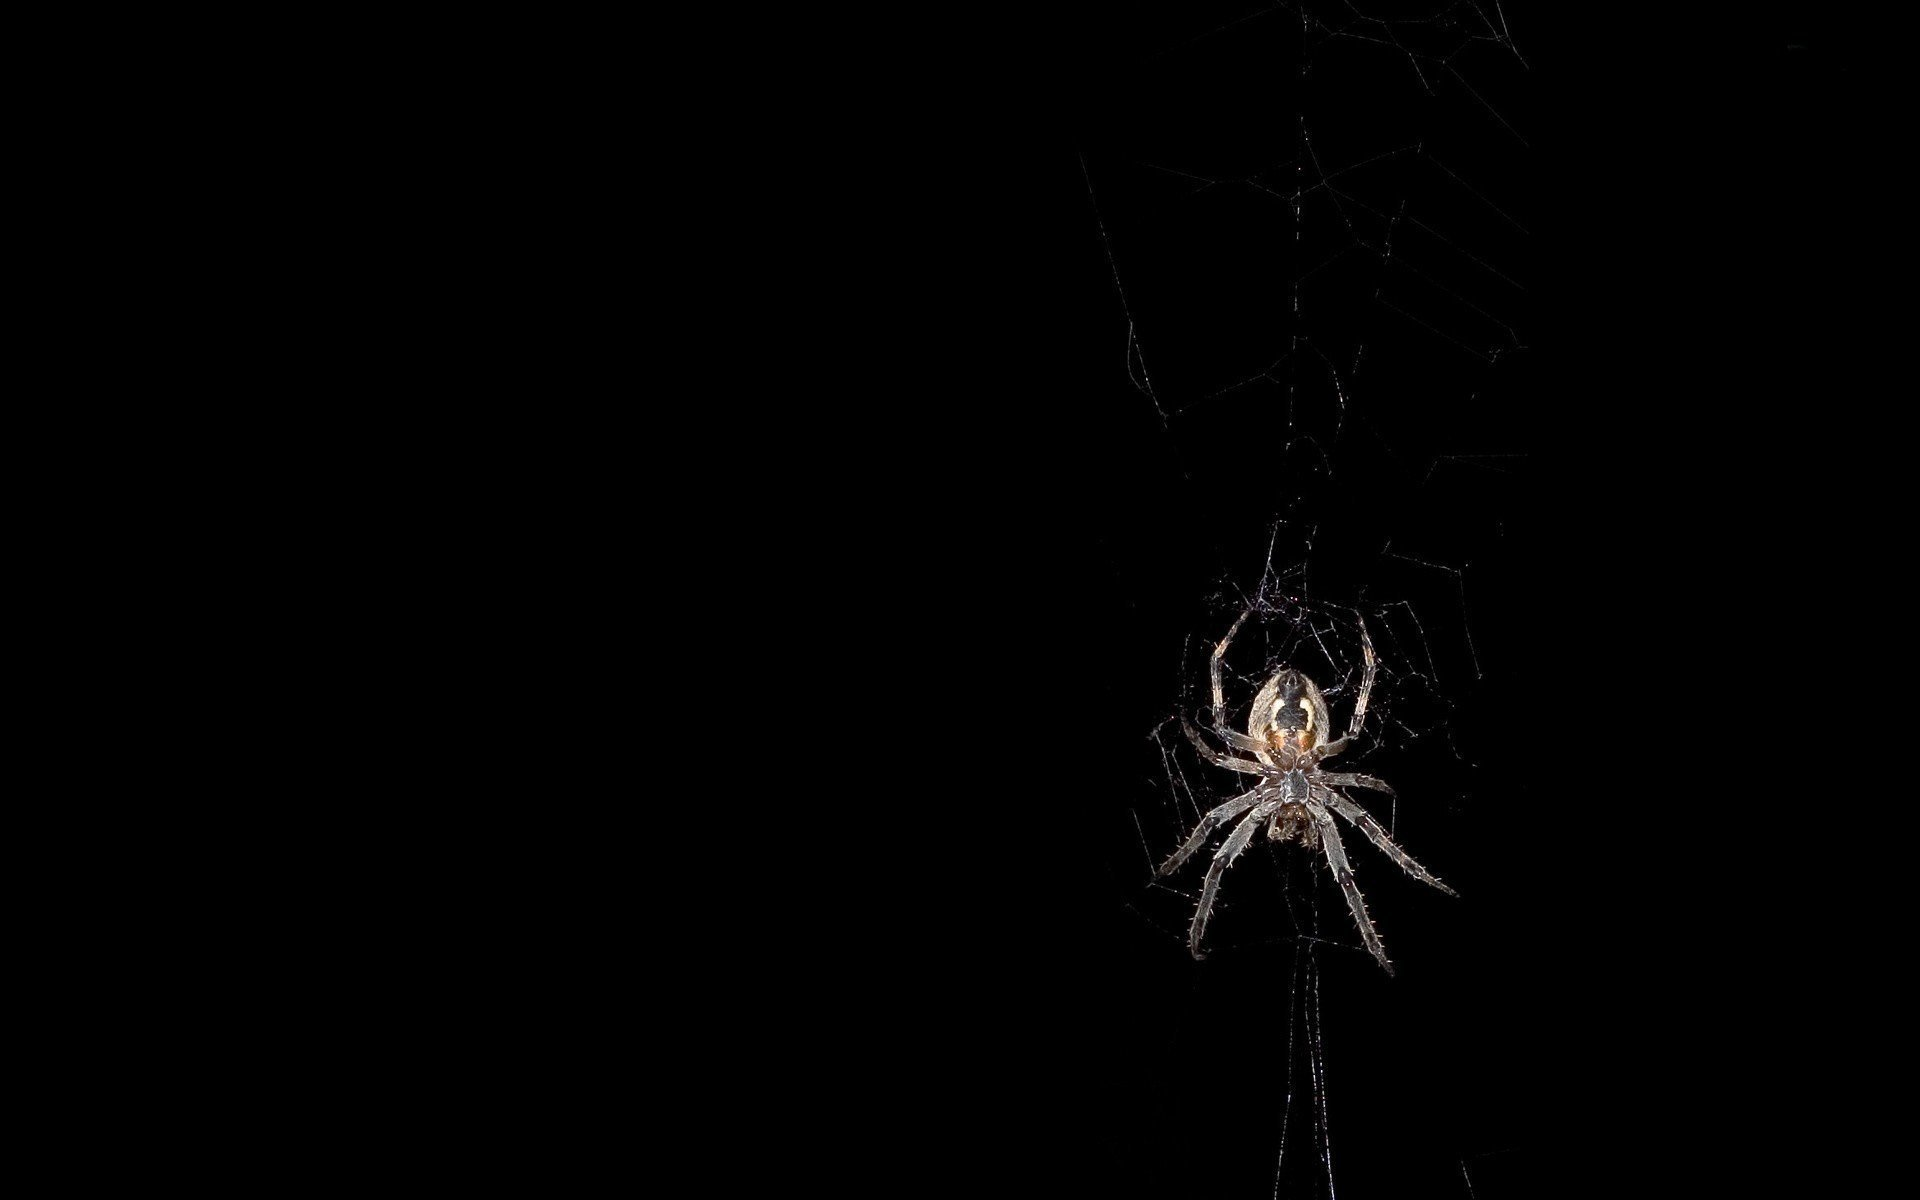 Free Spider high quality wallpaper ID:22110 for hd 1920x1200 desktop